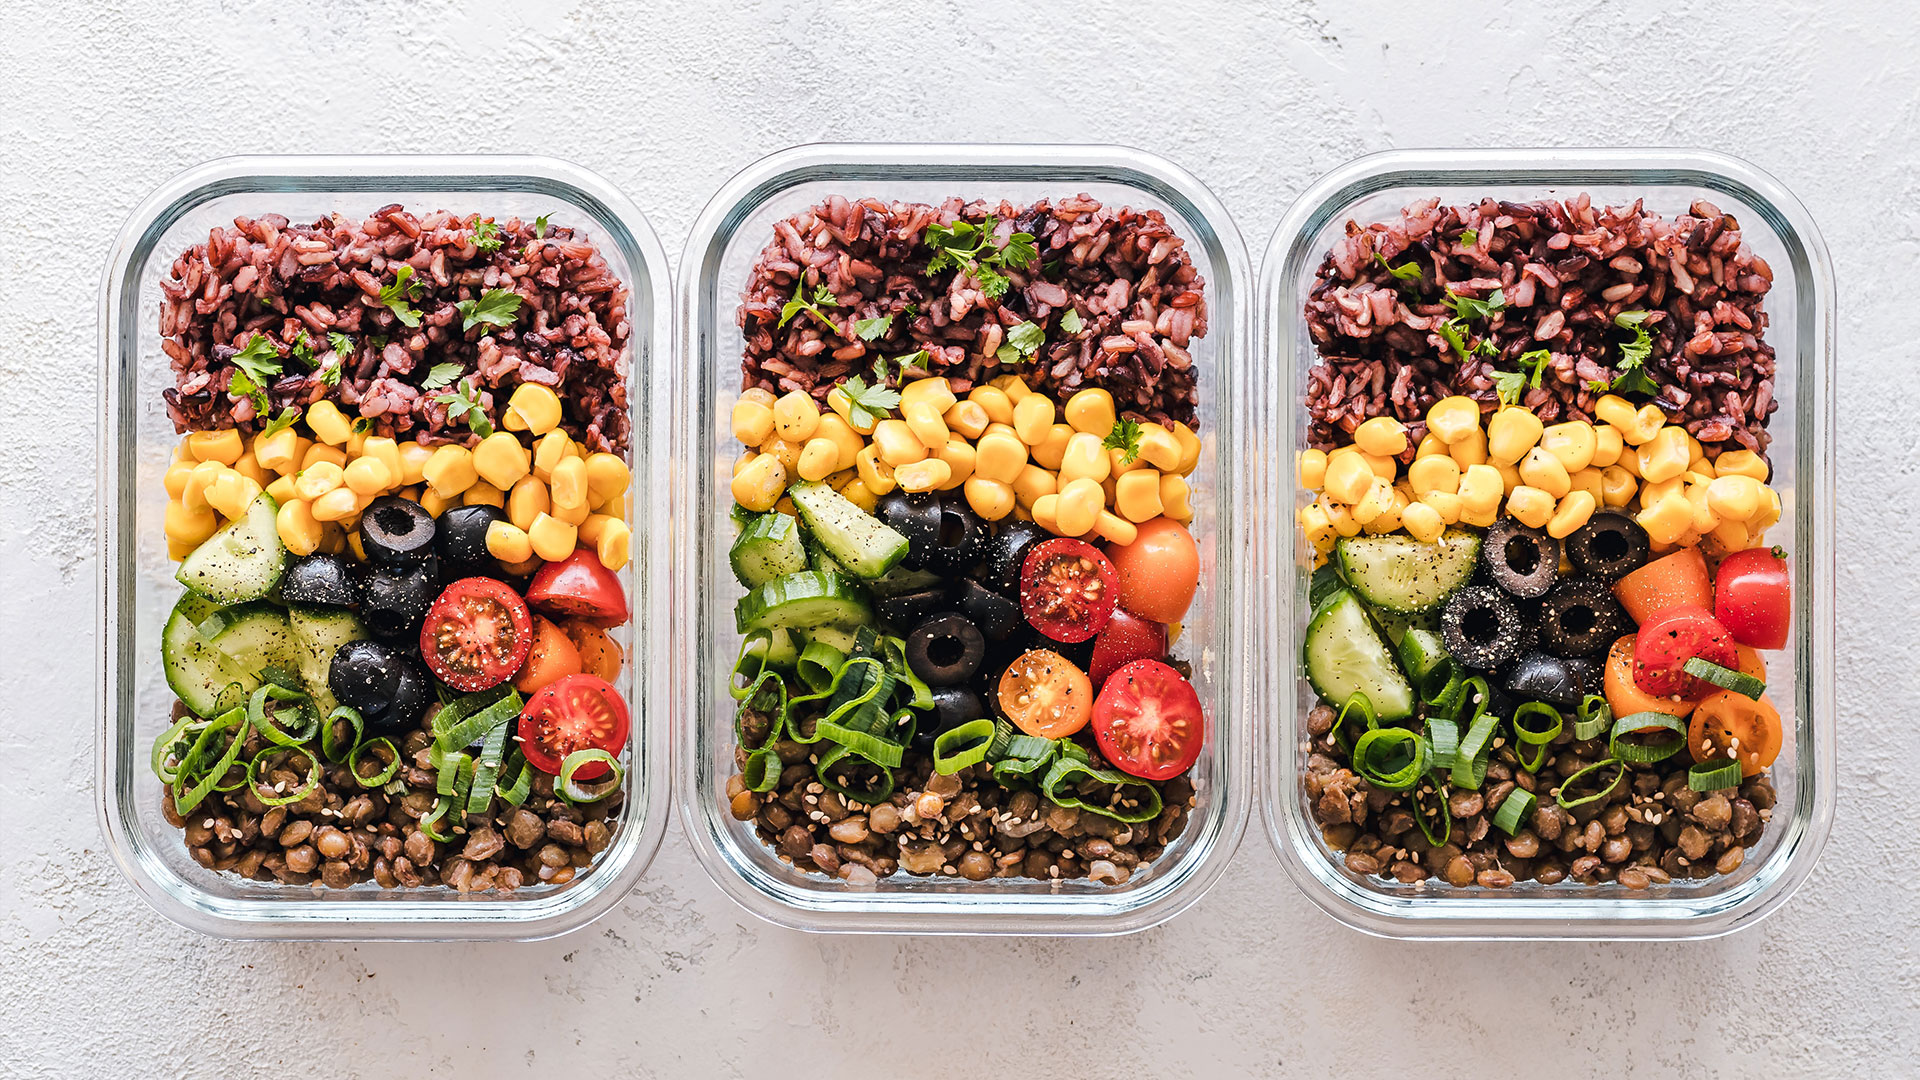 Eating healthy food to promote health hair and prevent hair loss